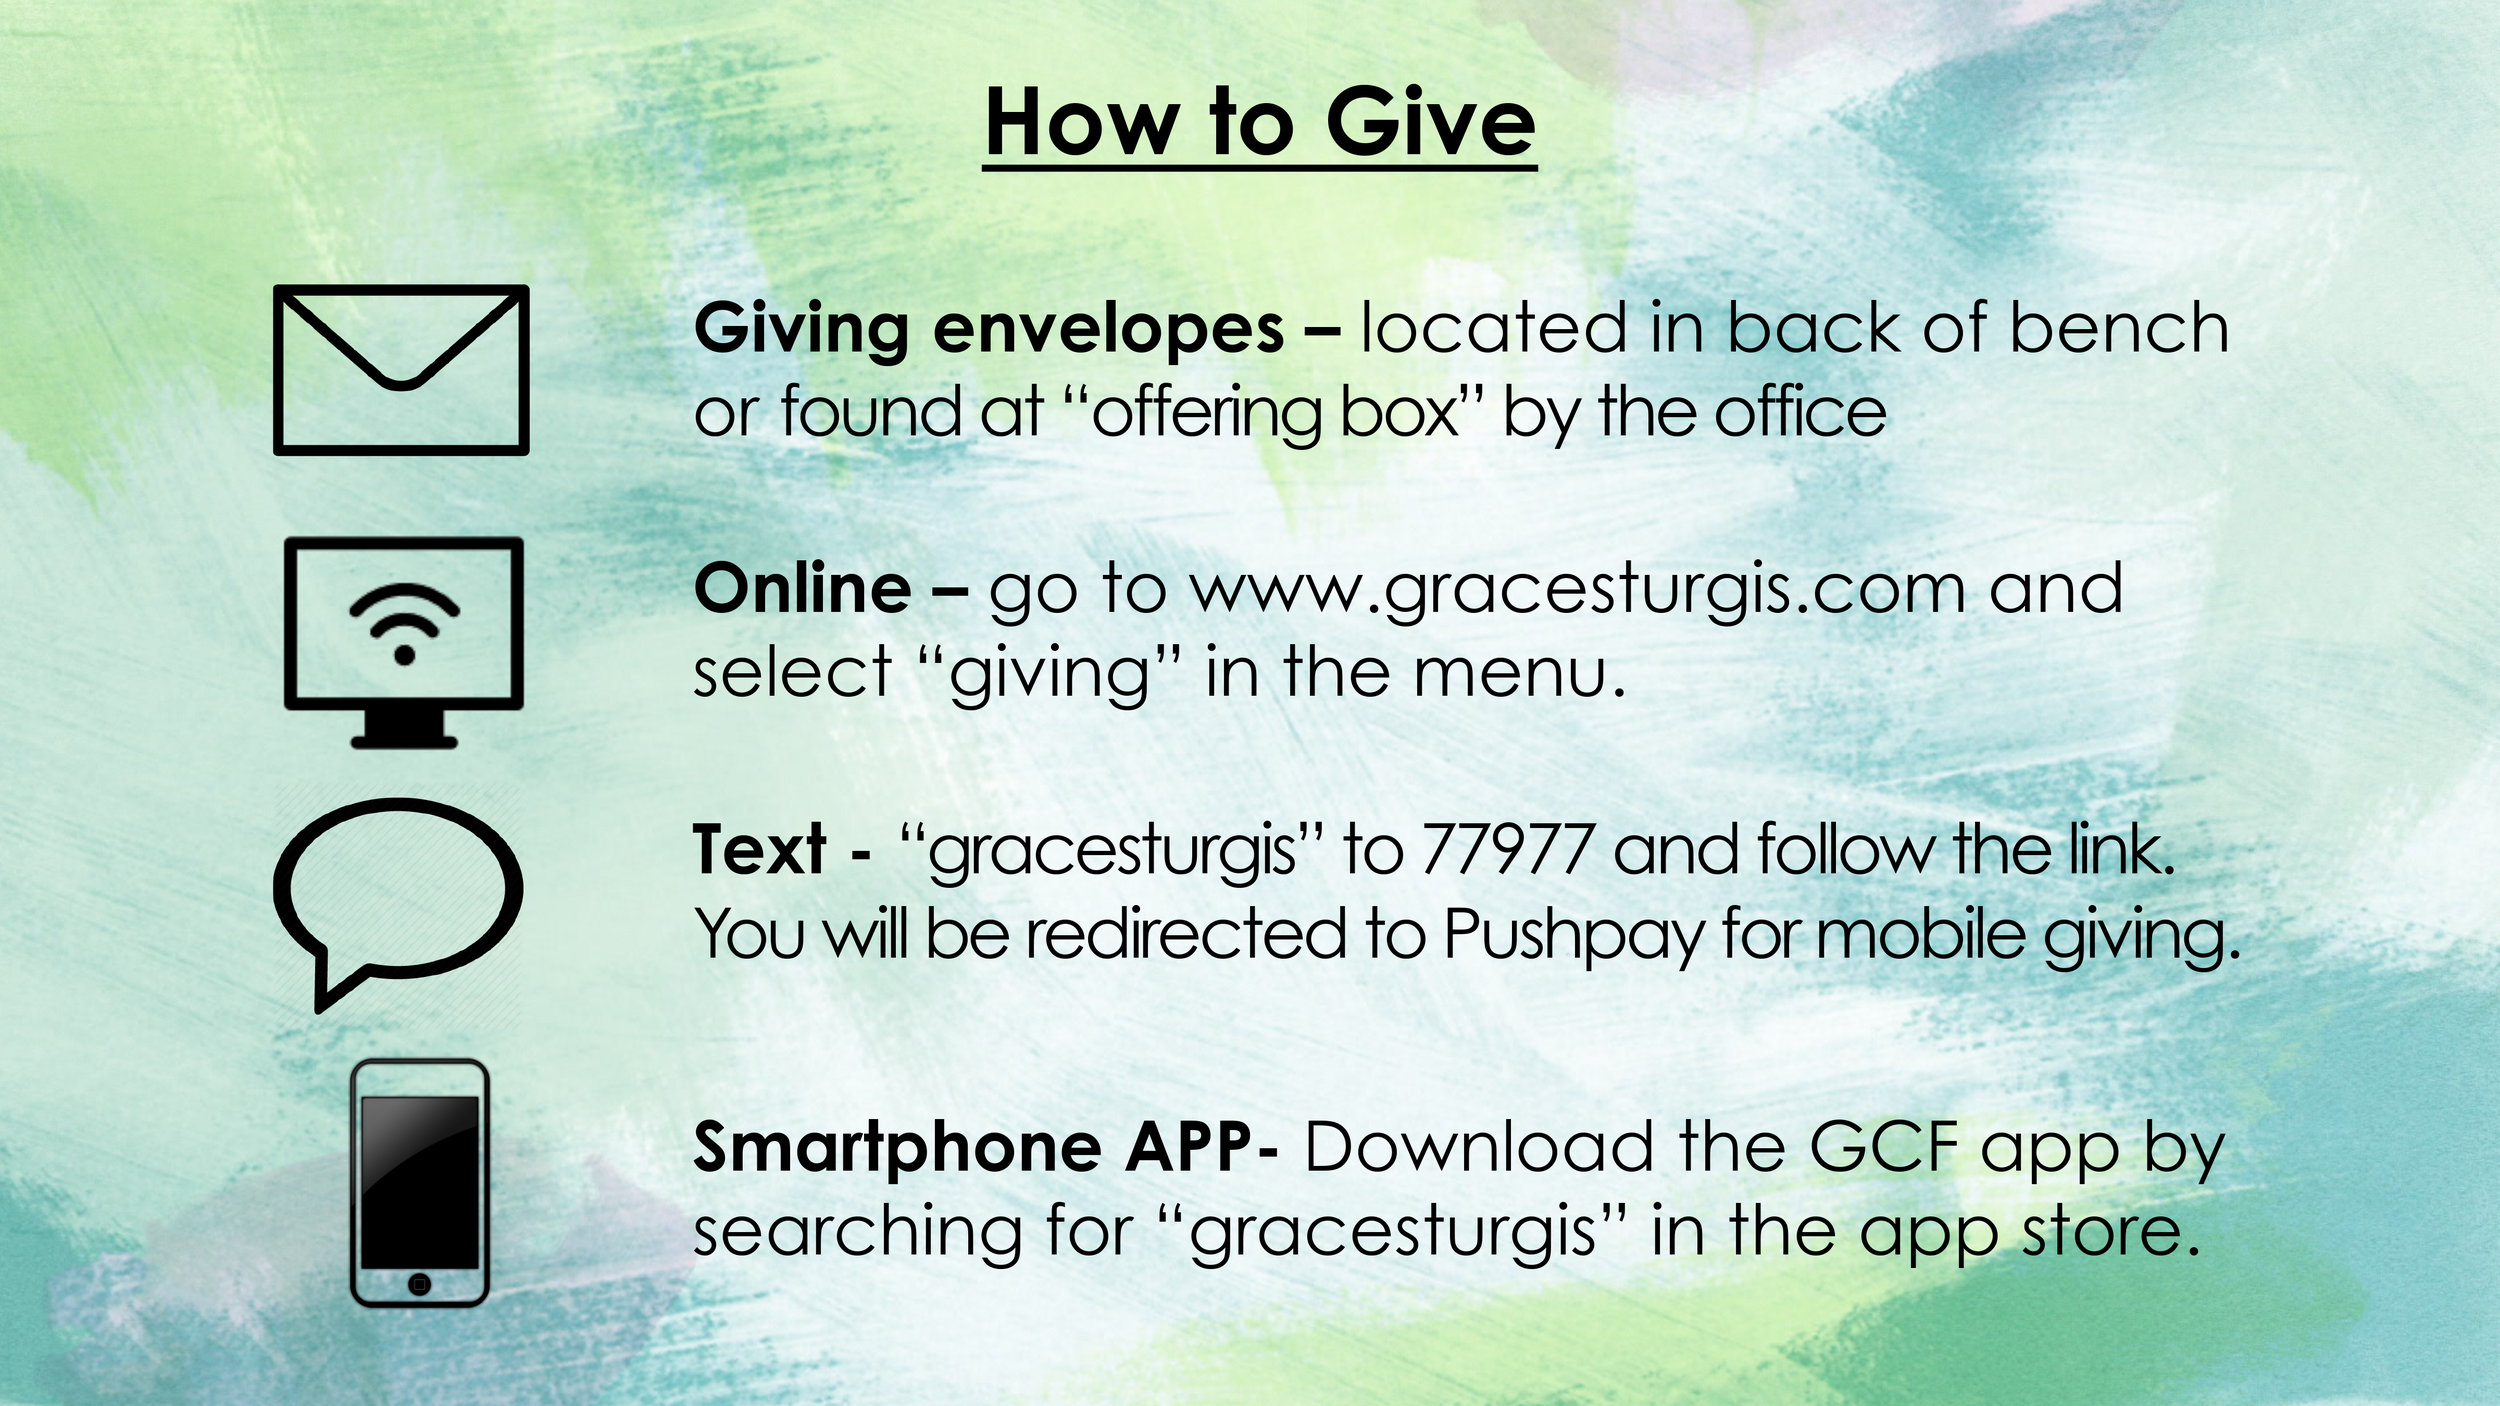 how to give.jpg